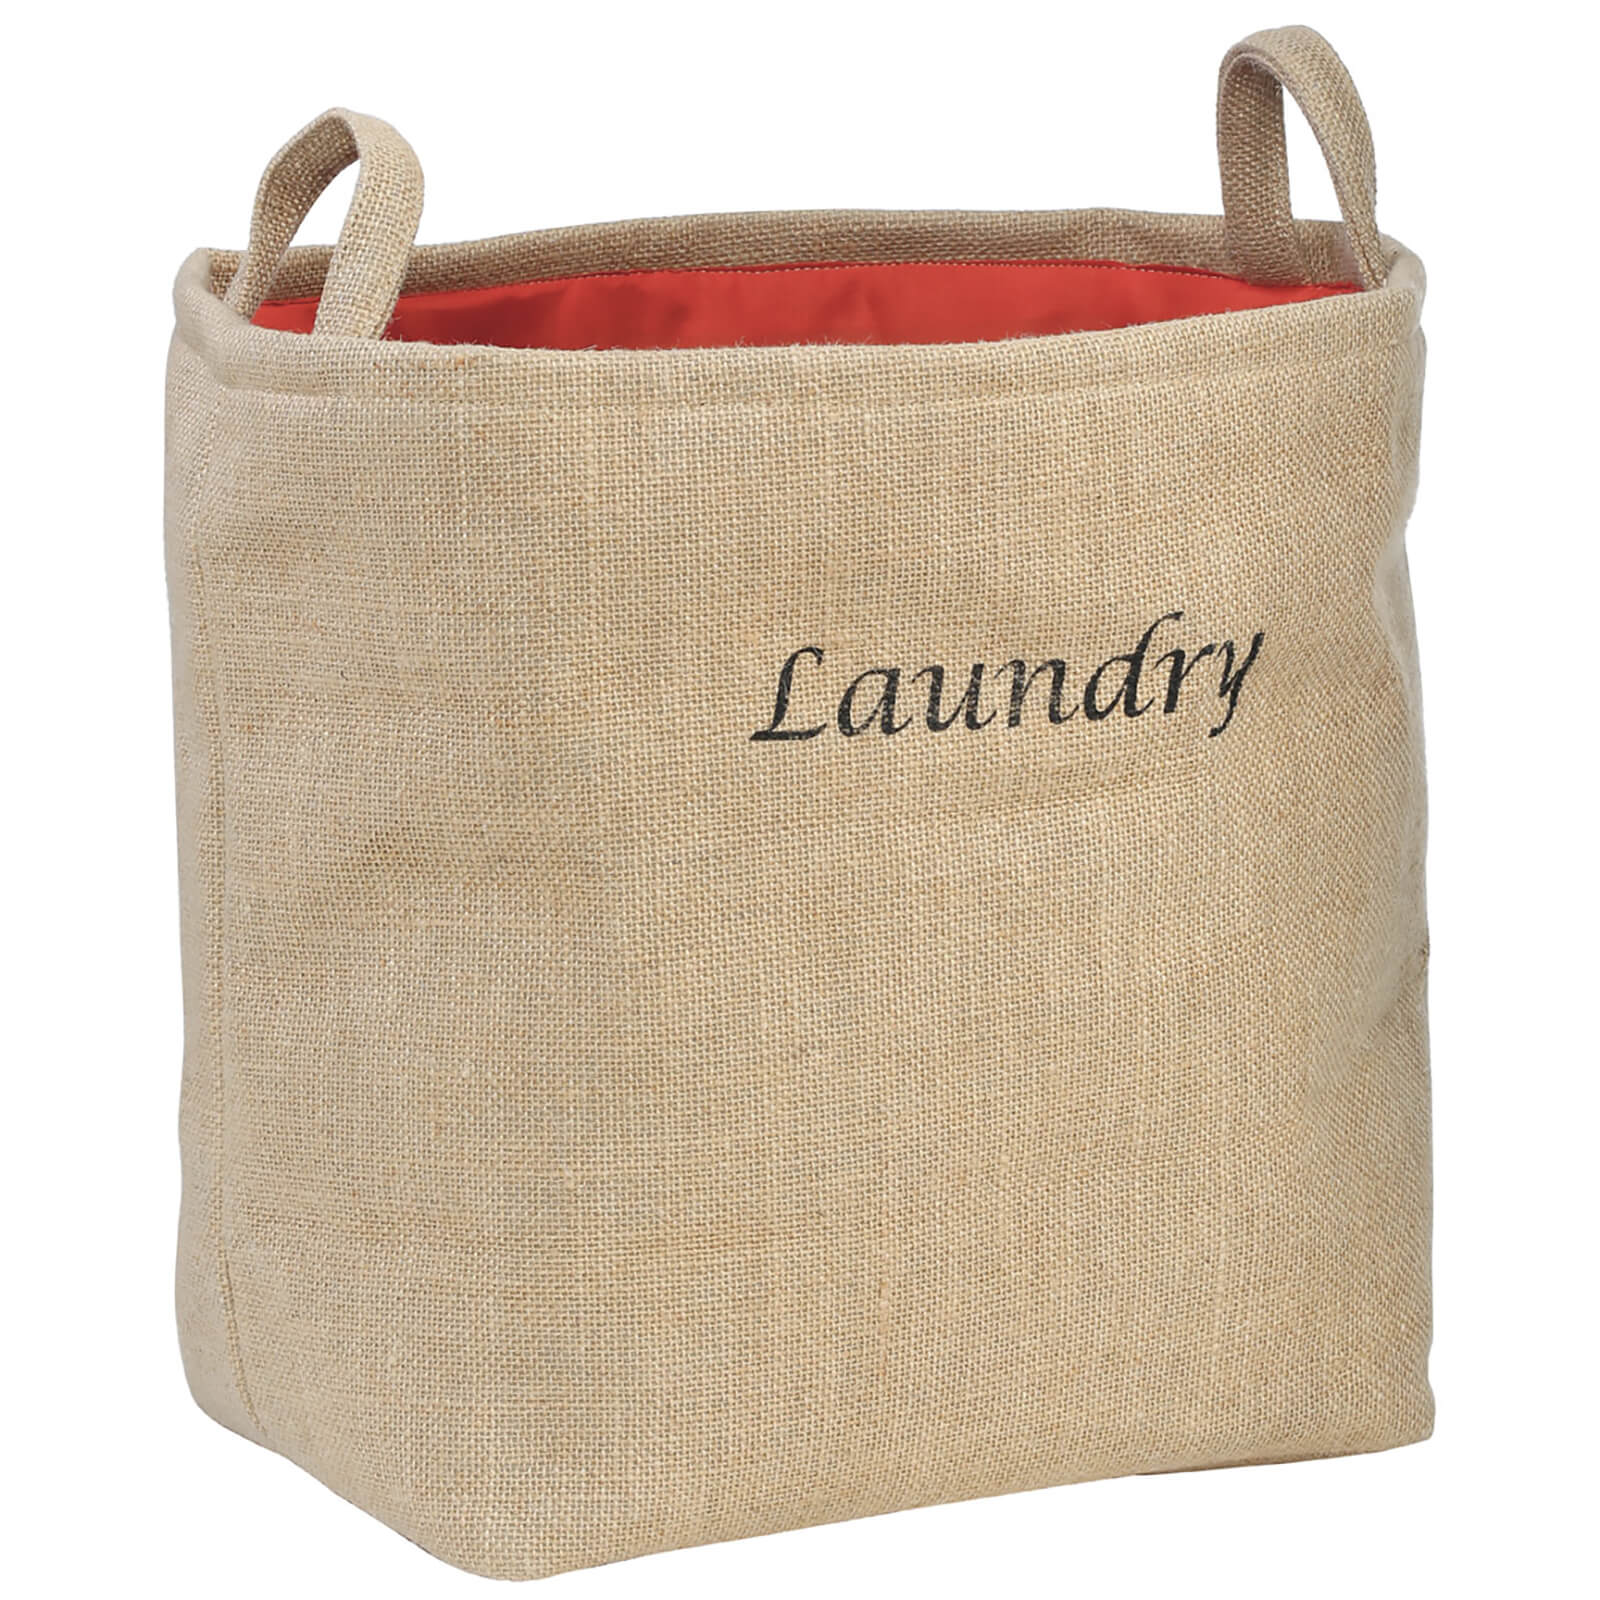 Fifty Five South Jute Hessian Laundry Bag - Natural